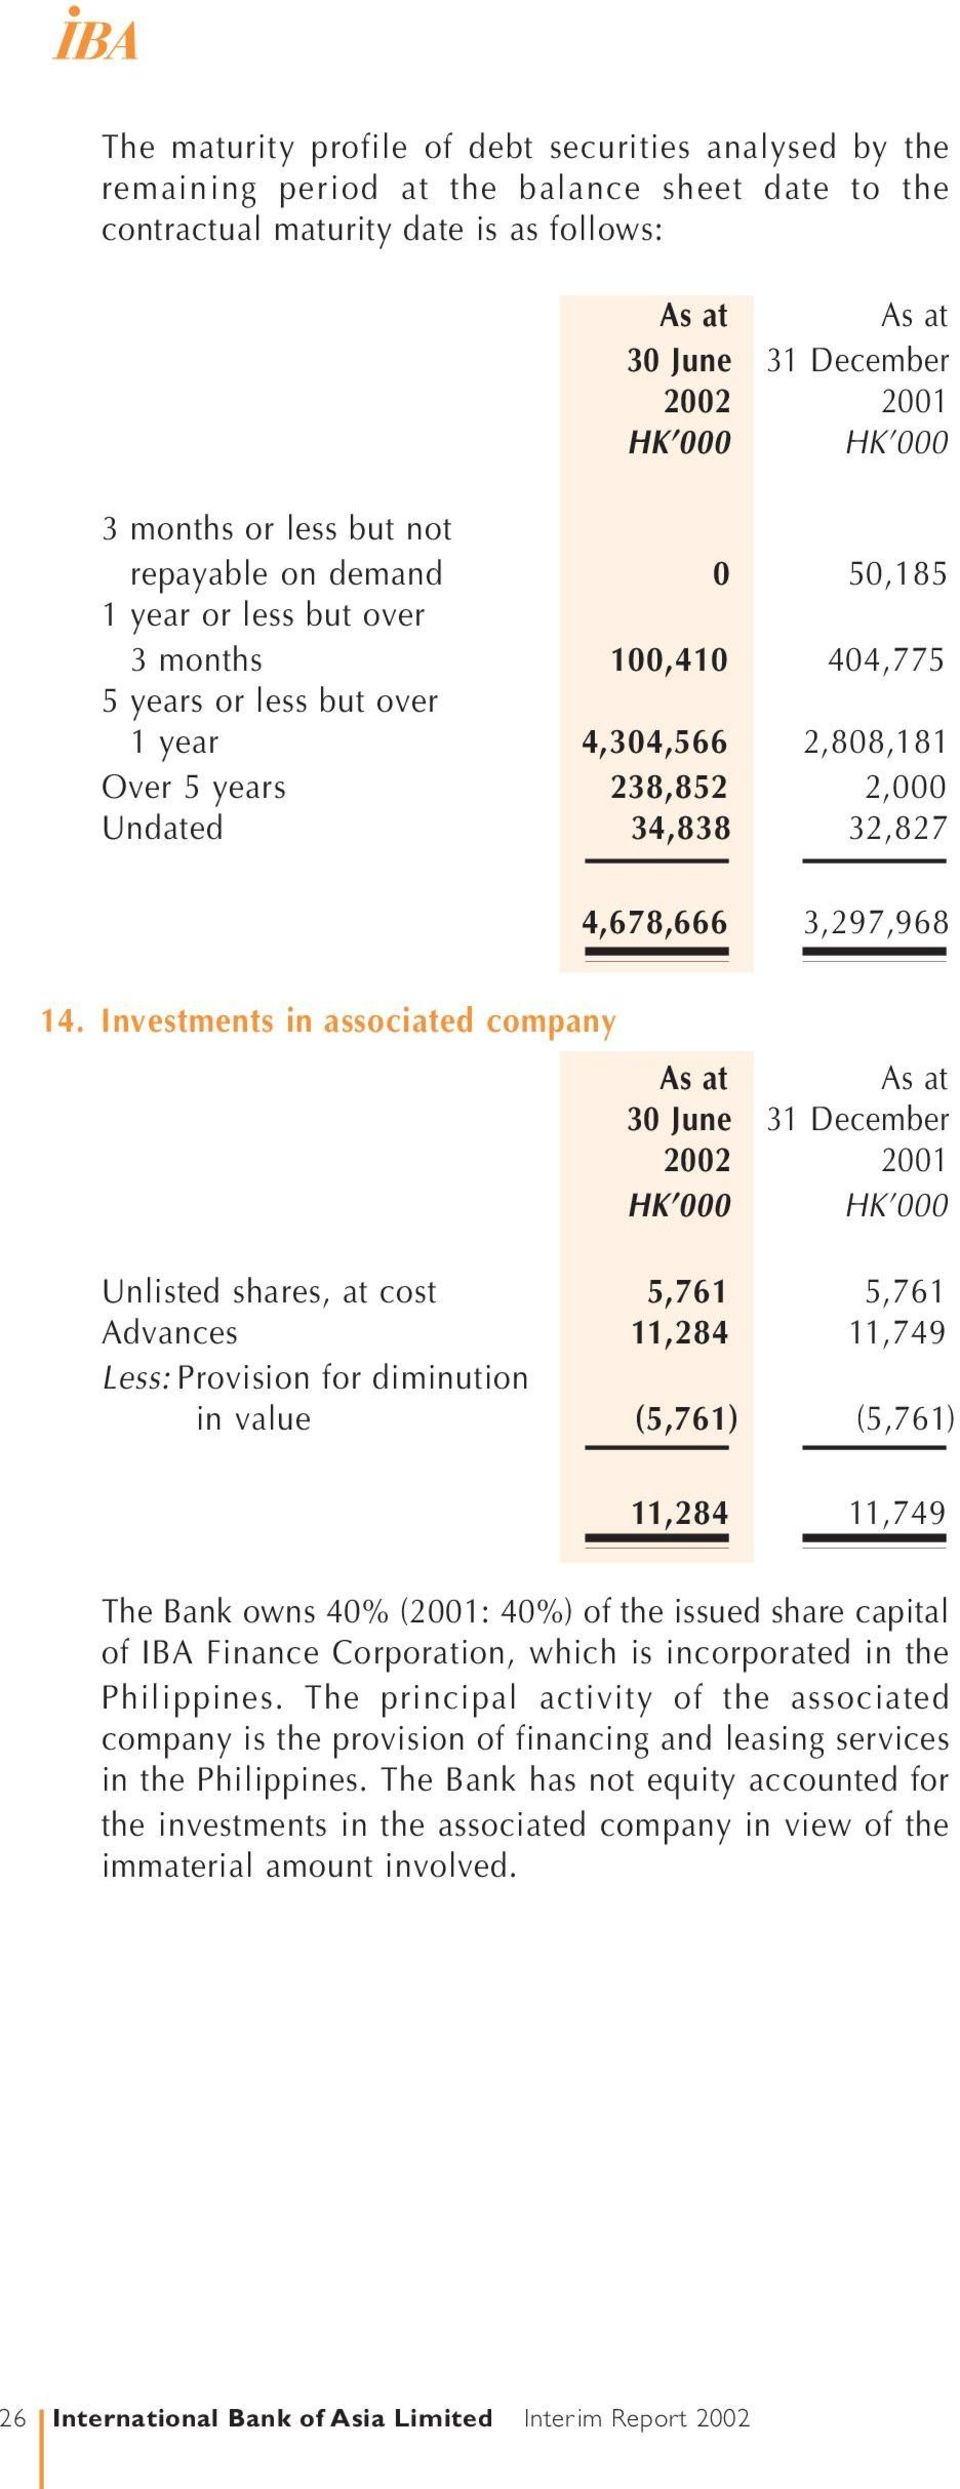 Investments in associated company Unlisted shares, at cost 5,761 5,761 Advances 11,284 11,749 Less: Provision for diminution in value (5,761) (5,761) 11,284 11,749 The Bank owns 40% (2001: 40%) of